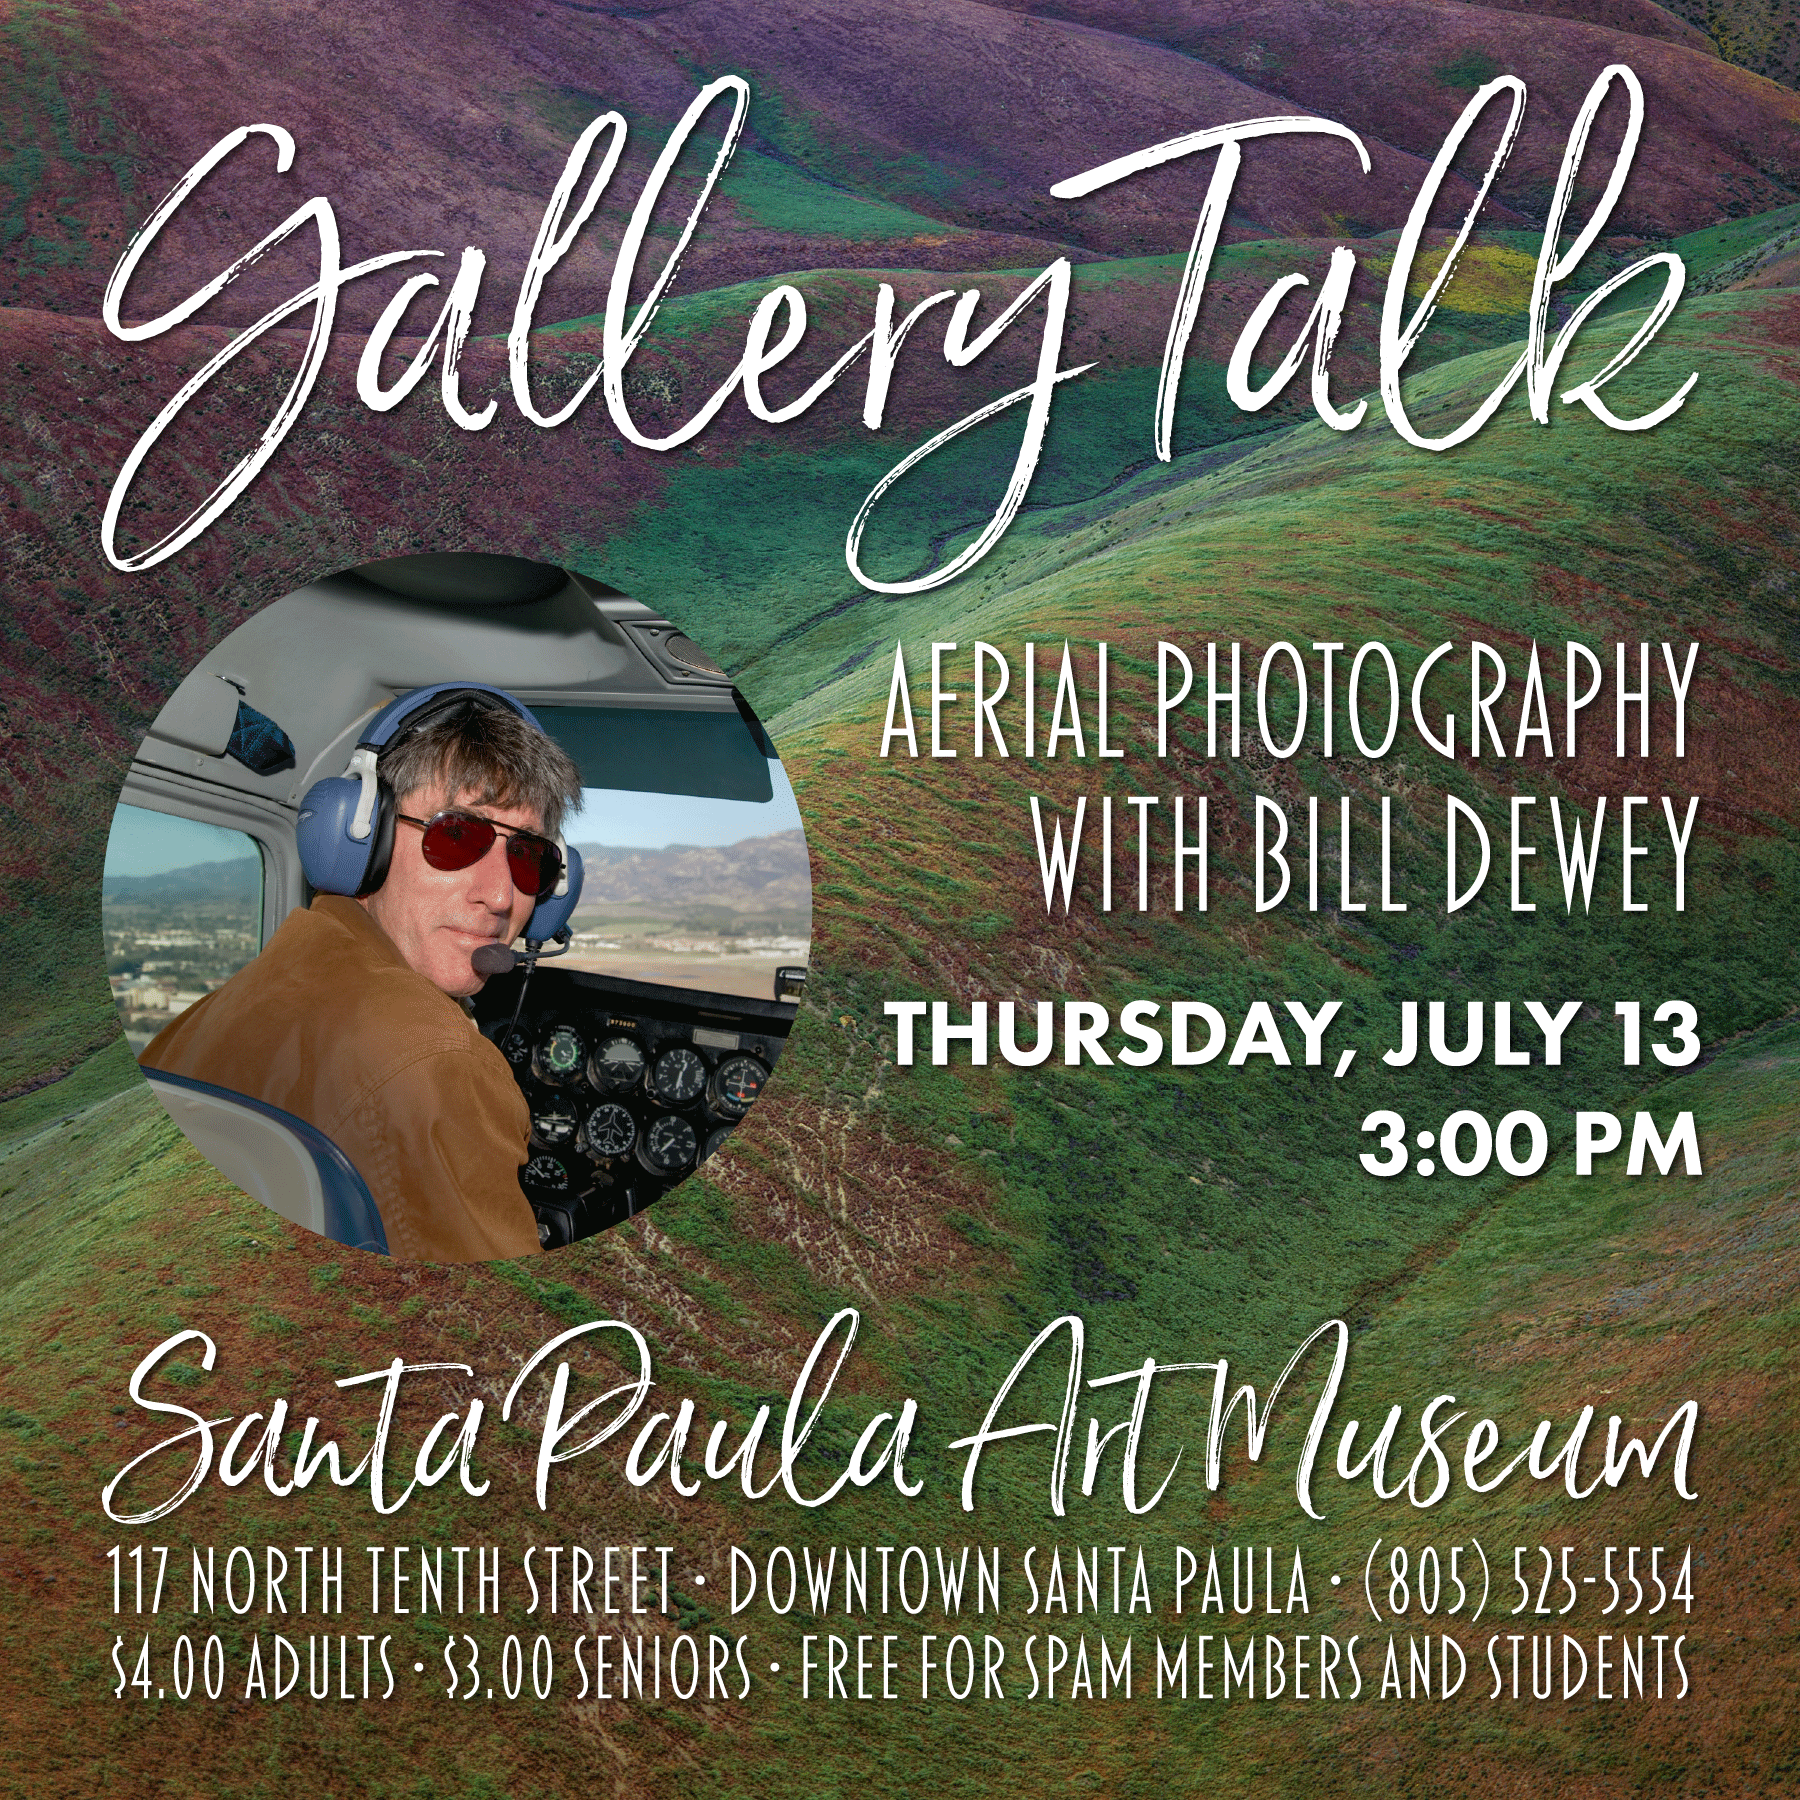 July 13 — Pilot and Photographer Bill Dewey to Share His Point of View on California Landscape